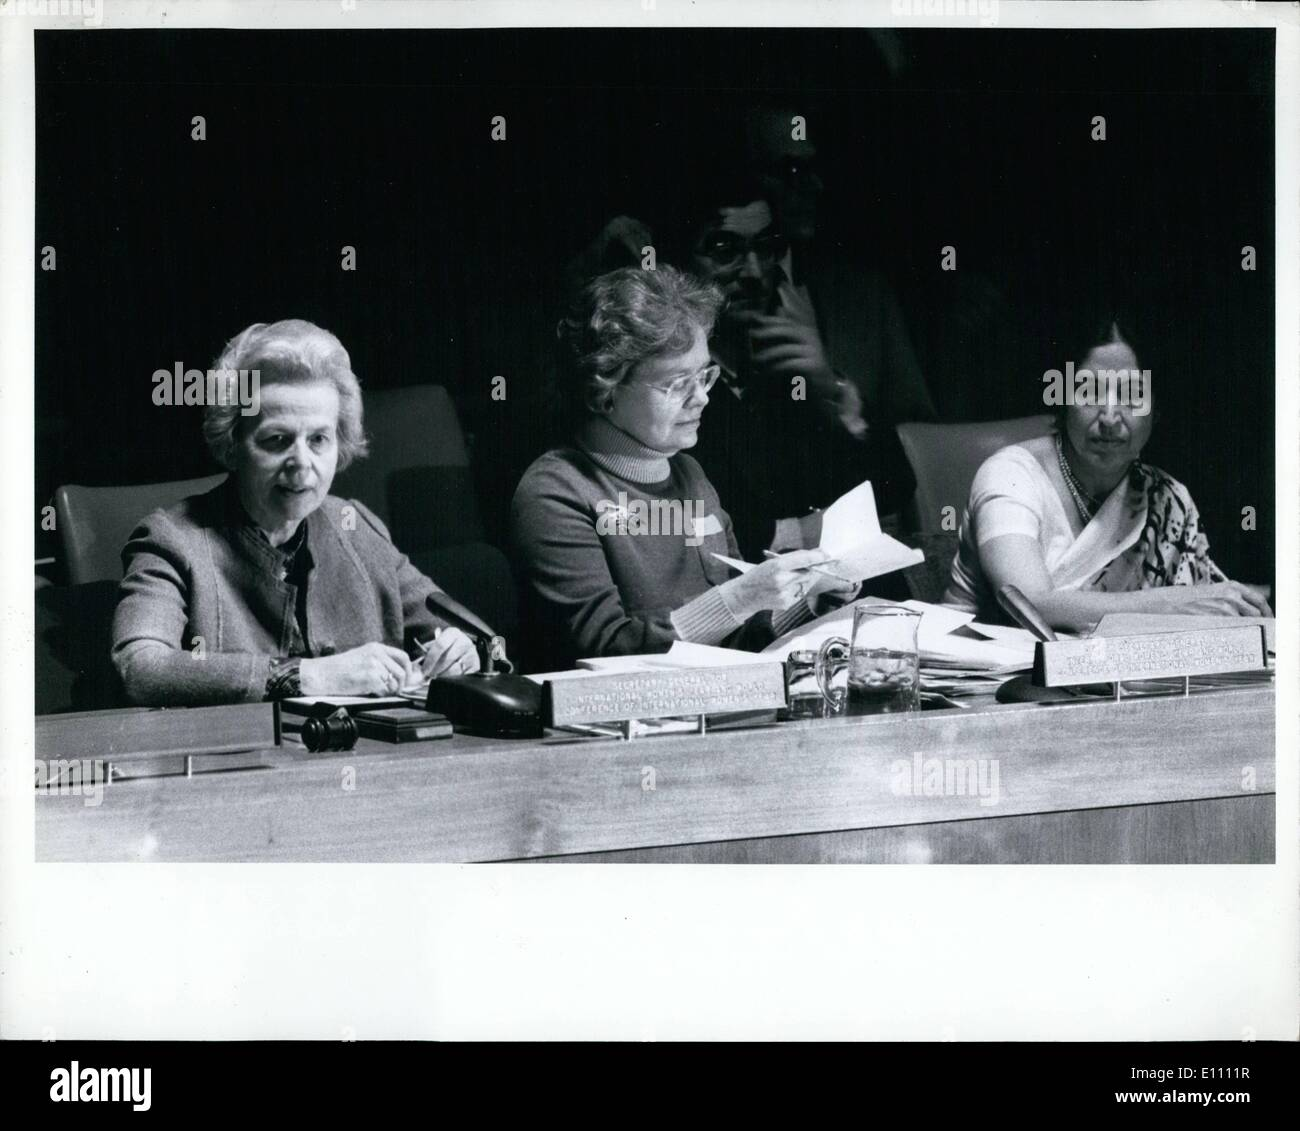 Mar. 03, 1975 - Preparatory Committee For International Women's Year Conference Opens Session At UN Headquarters: A Committee preparing for the World Conference of the International Women's Year this summer opened a two-week session here today. Under consideration are proposals for action over the 1975-1985 period to achieve the goal of the current woman's year - equality, development and peace, Princess Ashraf Pahlavi of Iran was elected Chairman. Mr - Stock Image